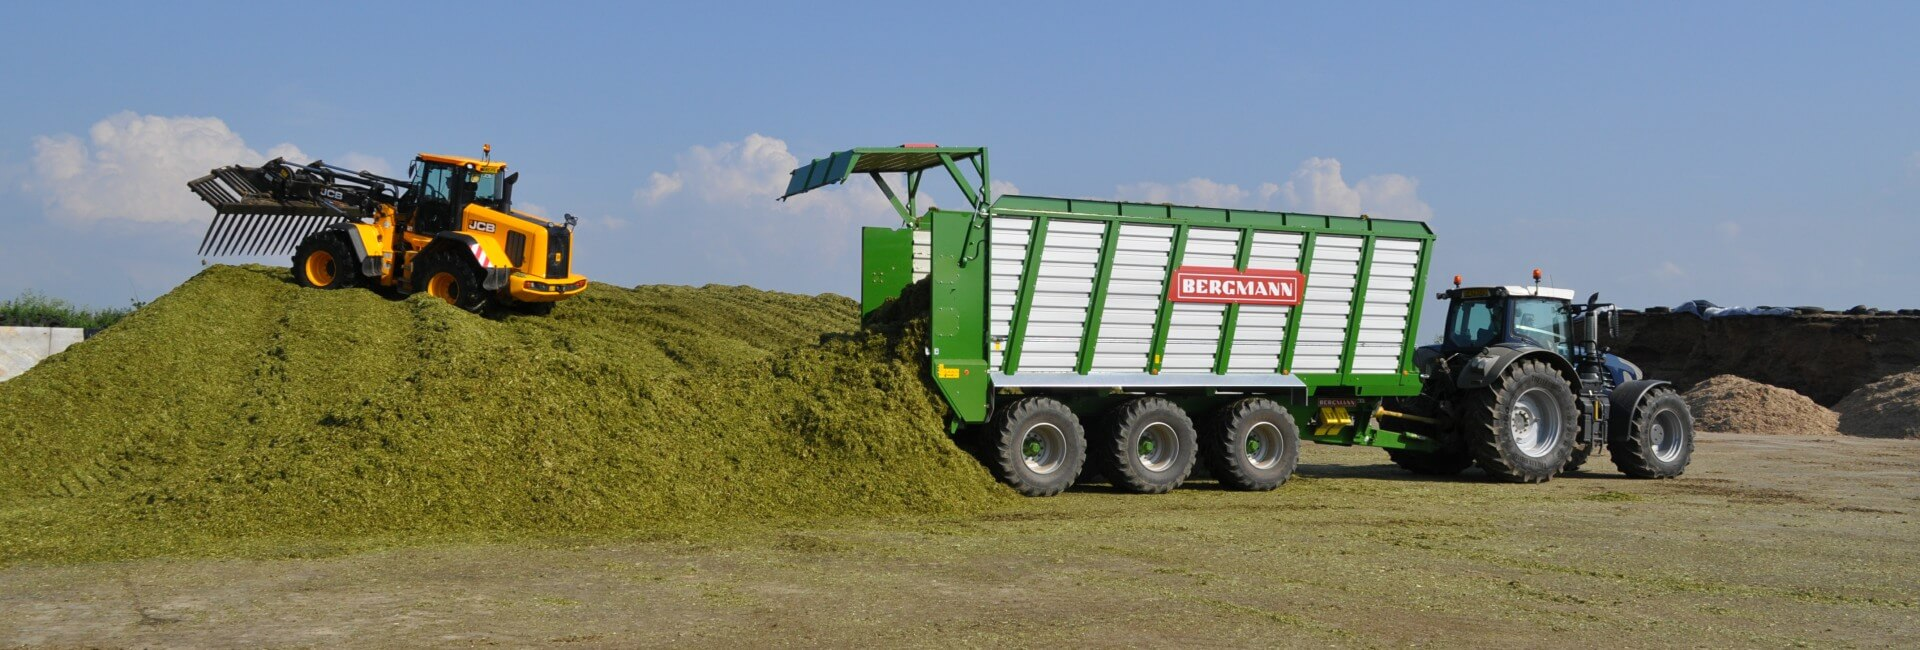 Silage trailer moving floor unloading at clamp